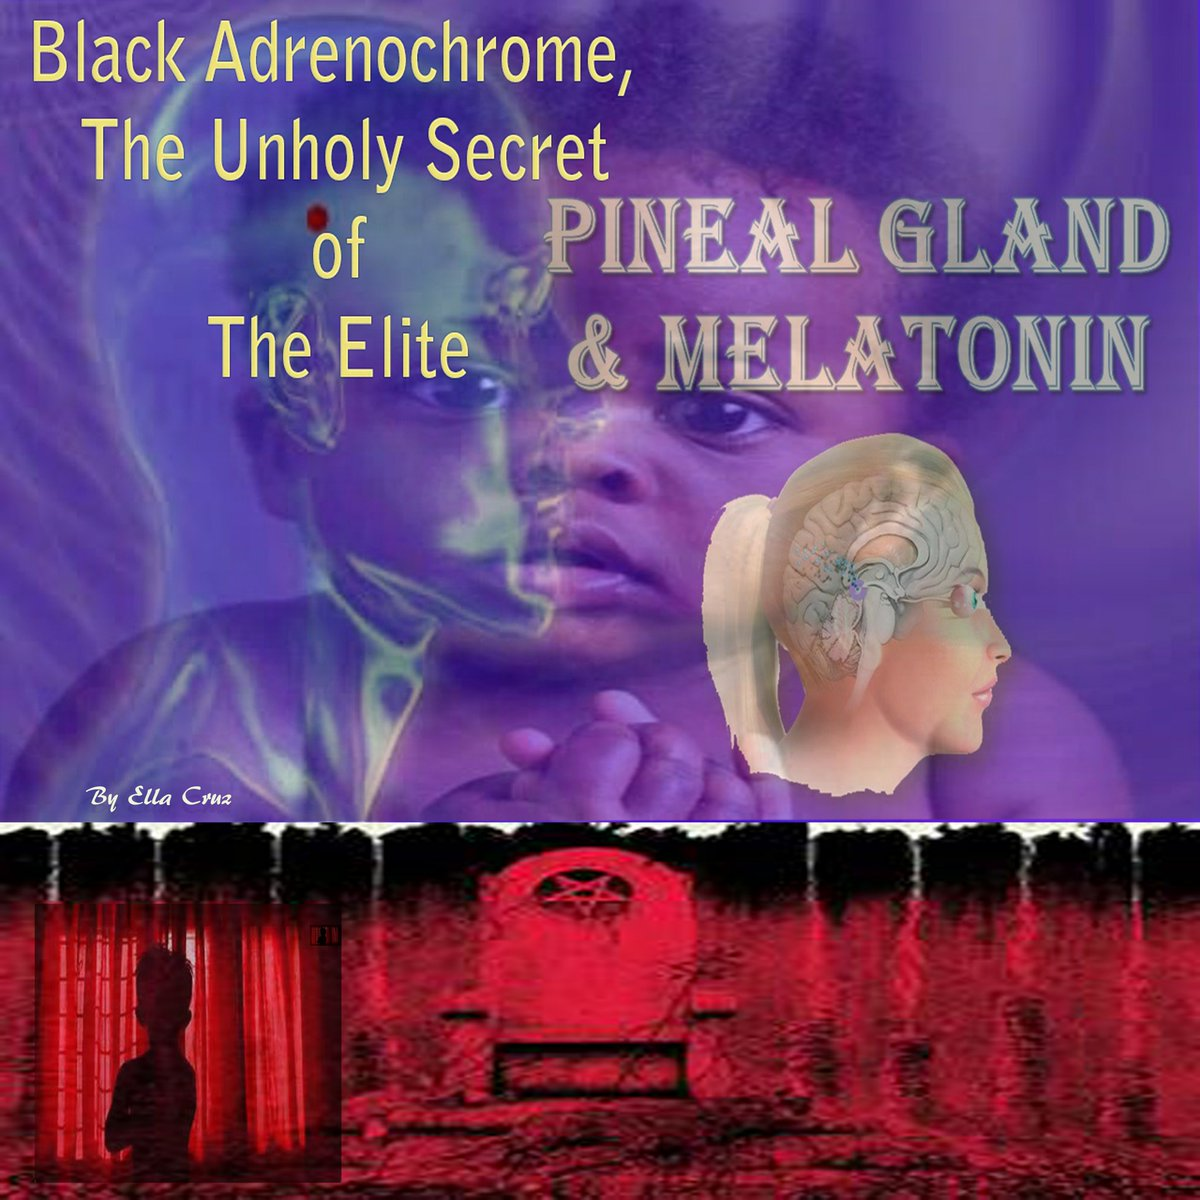 The Black Race Produces Calcified Adrenochrome Which Is Thicker, Stronger And Creamier